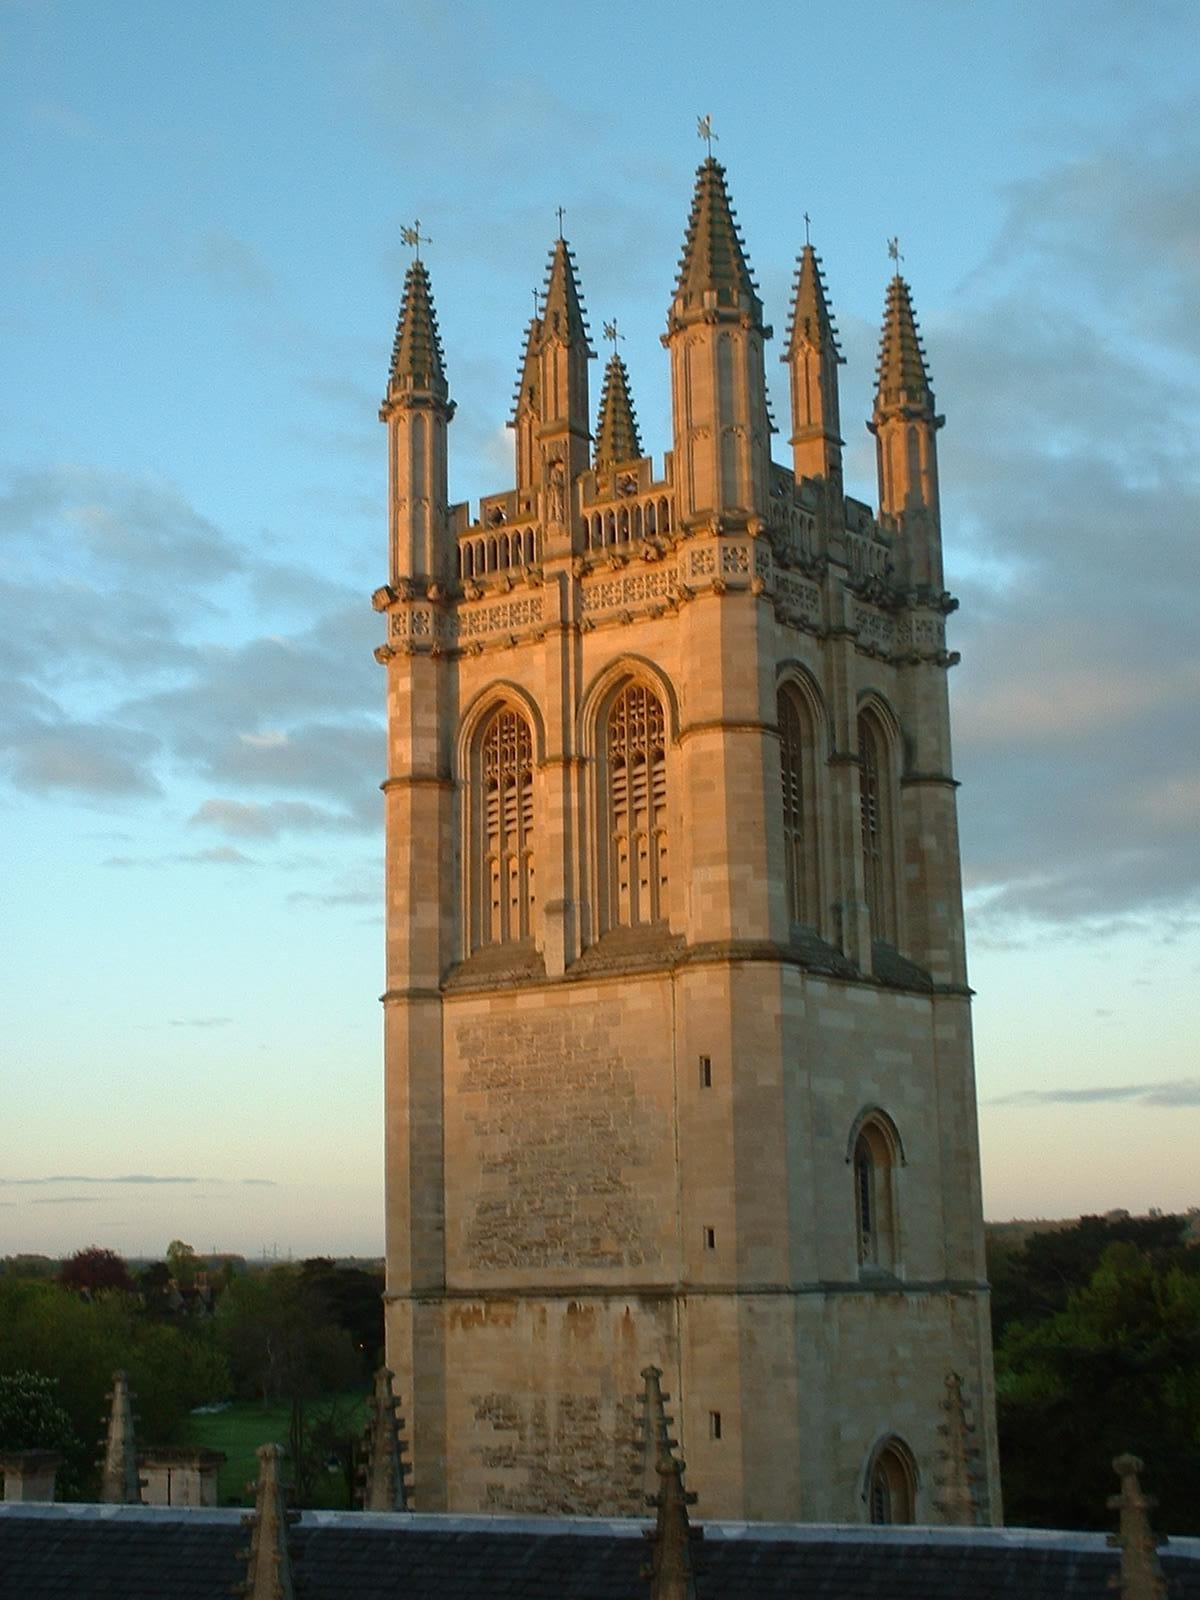 Magdalen Tower, Oxford, is the center of the historic May Day celebrations in the university town.